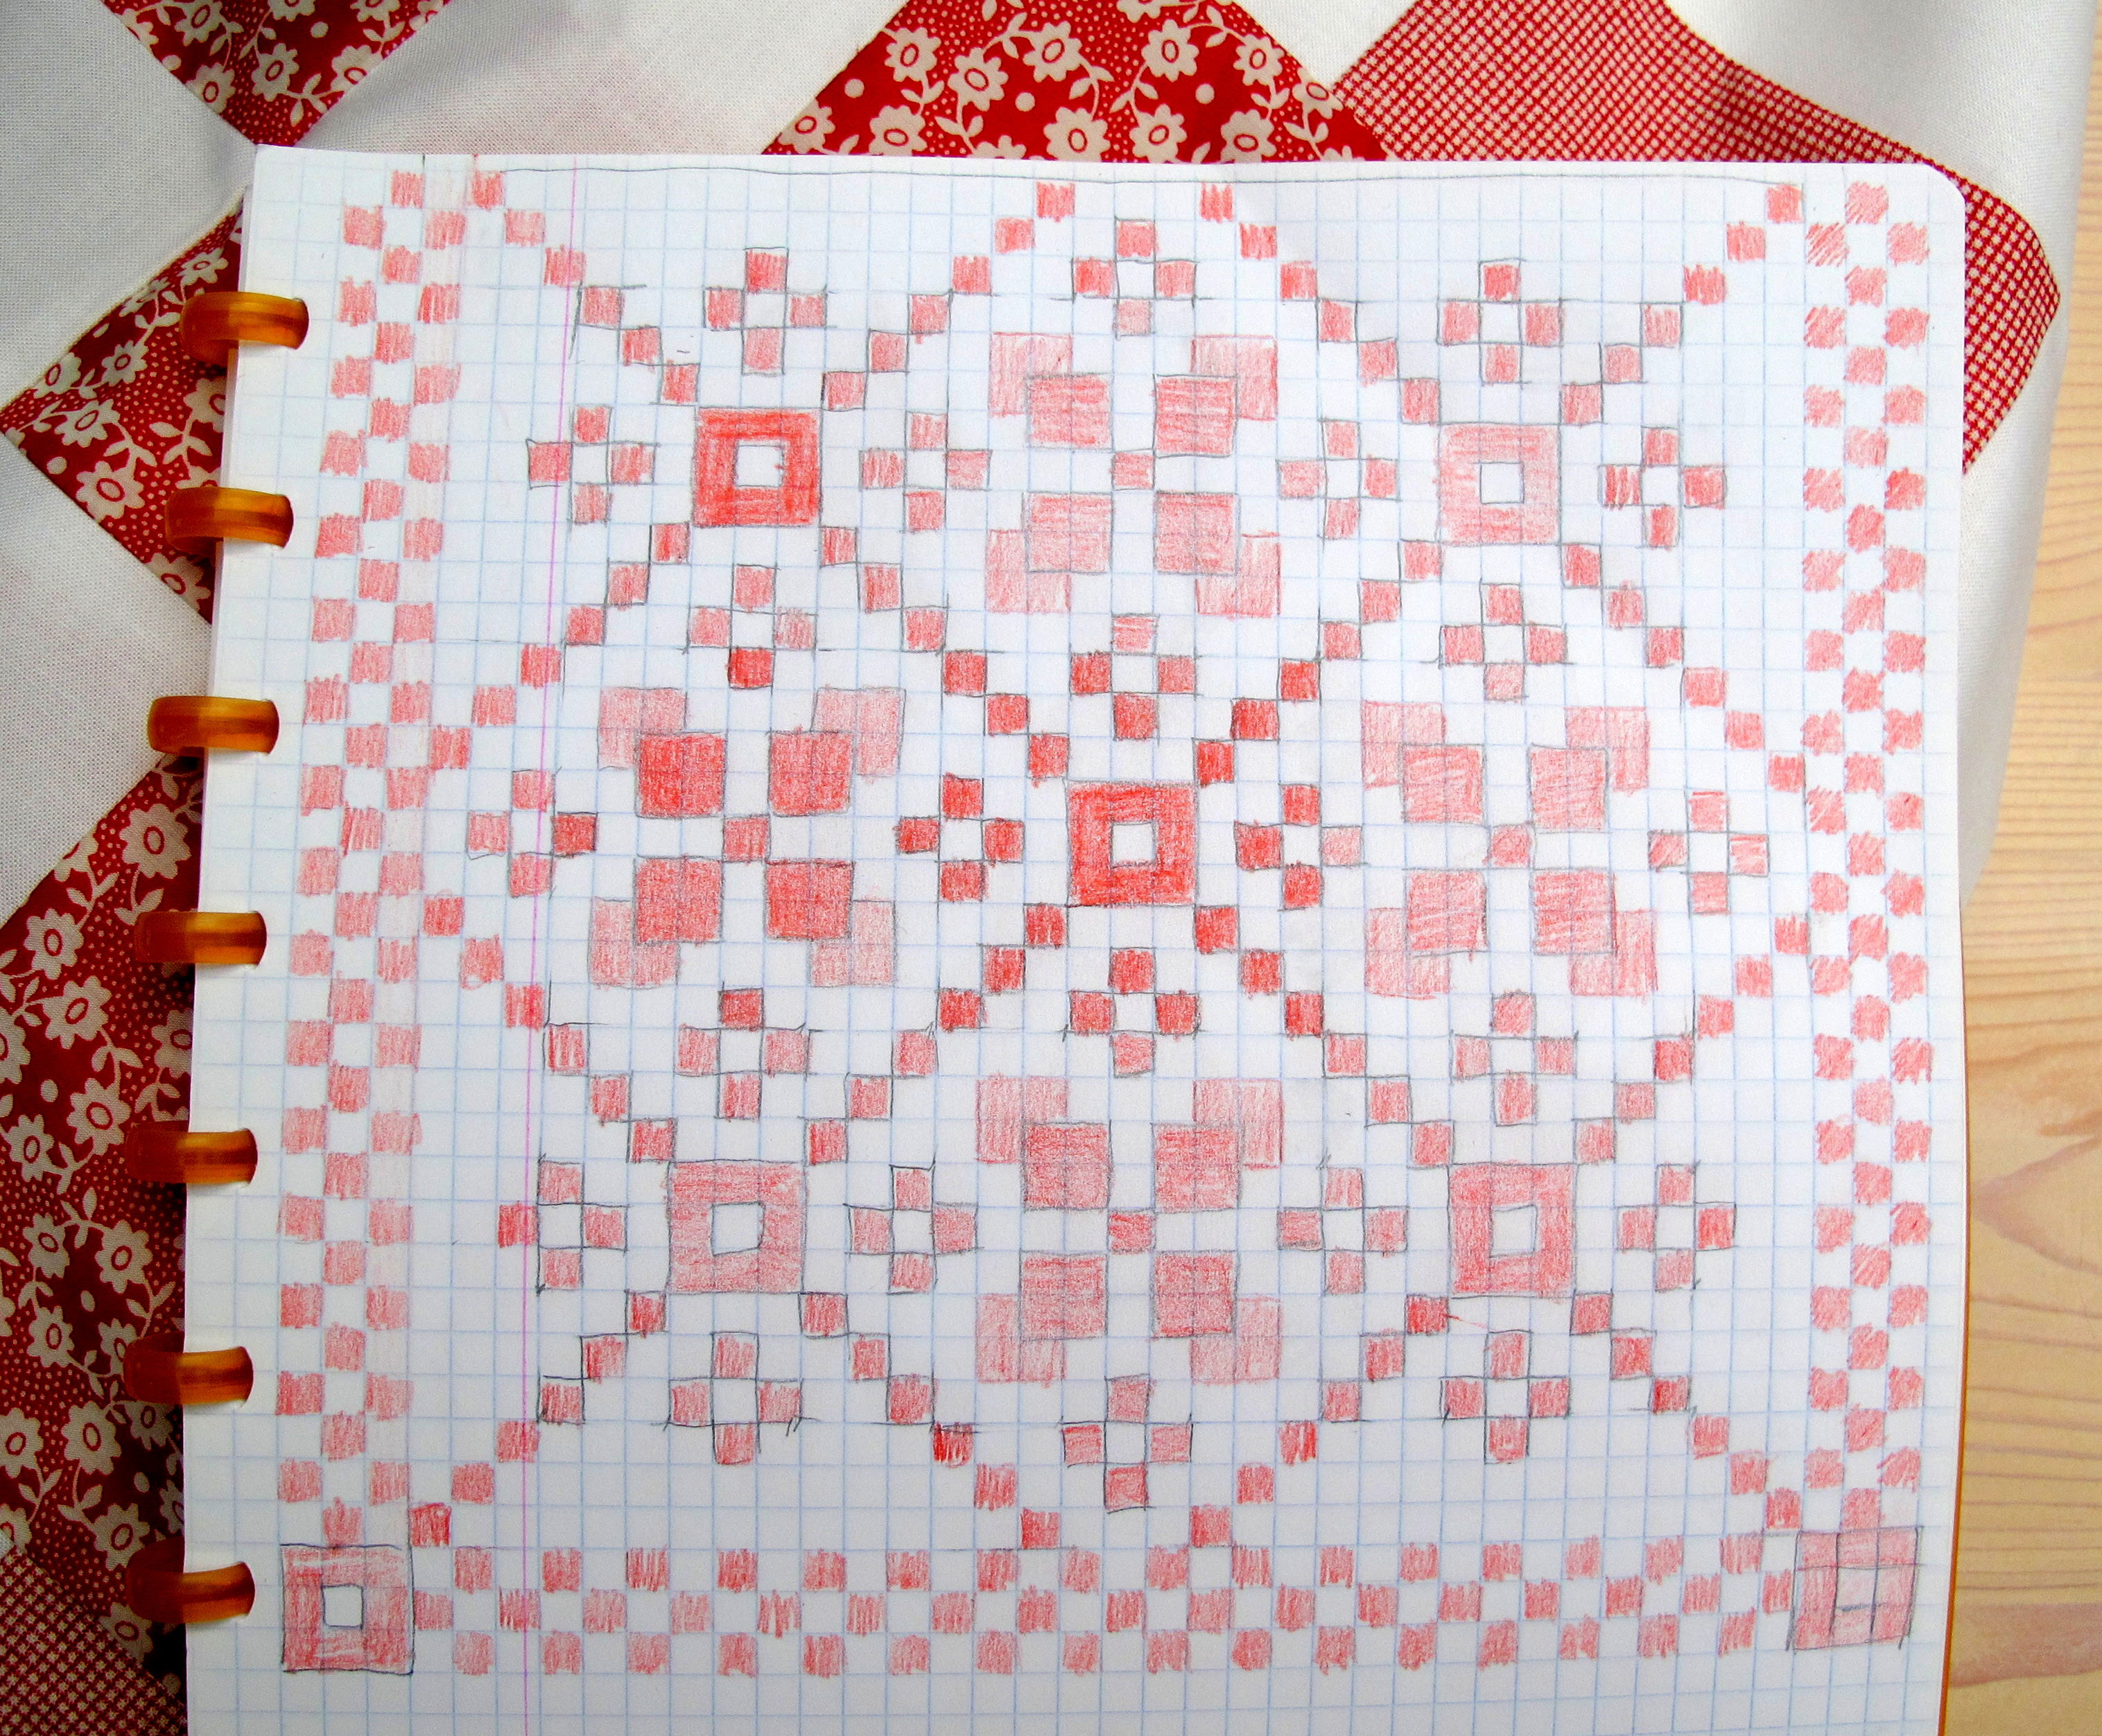 Pattern for red and white quilt